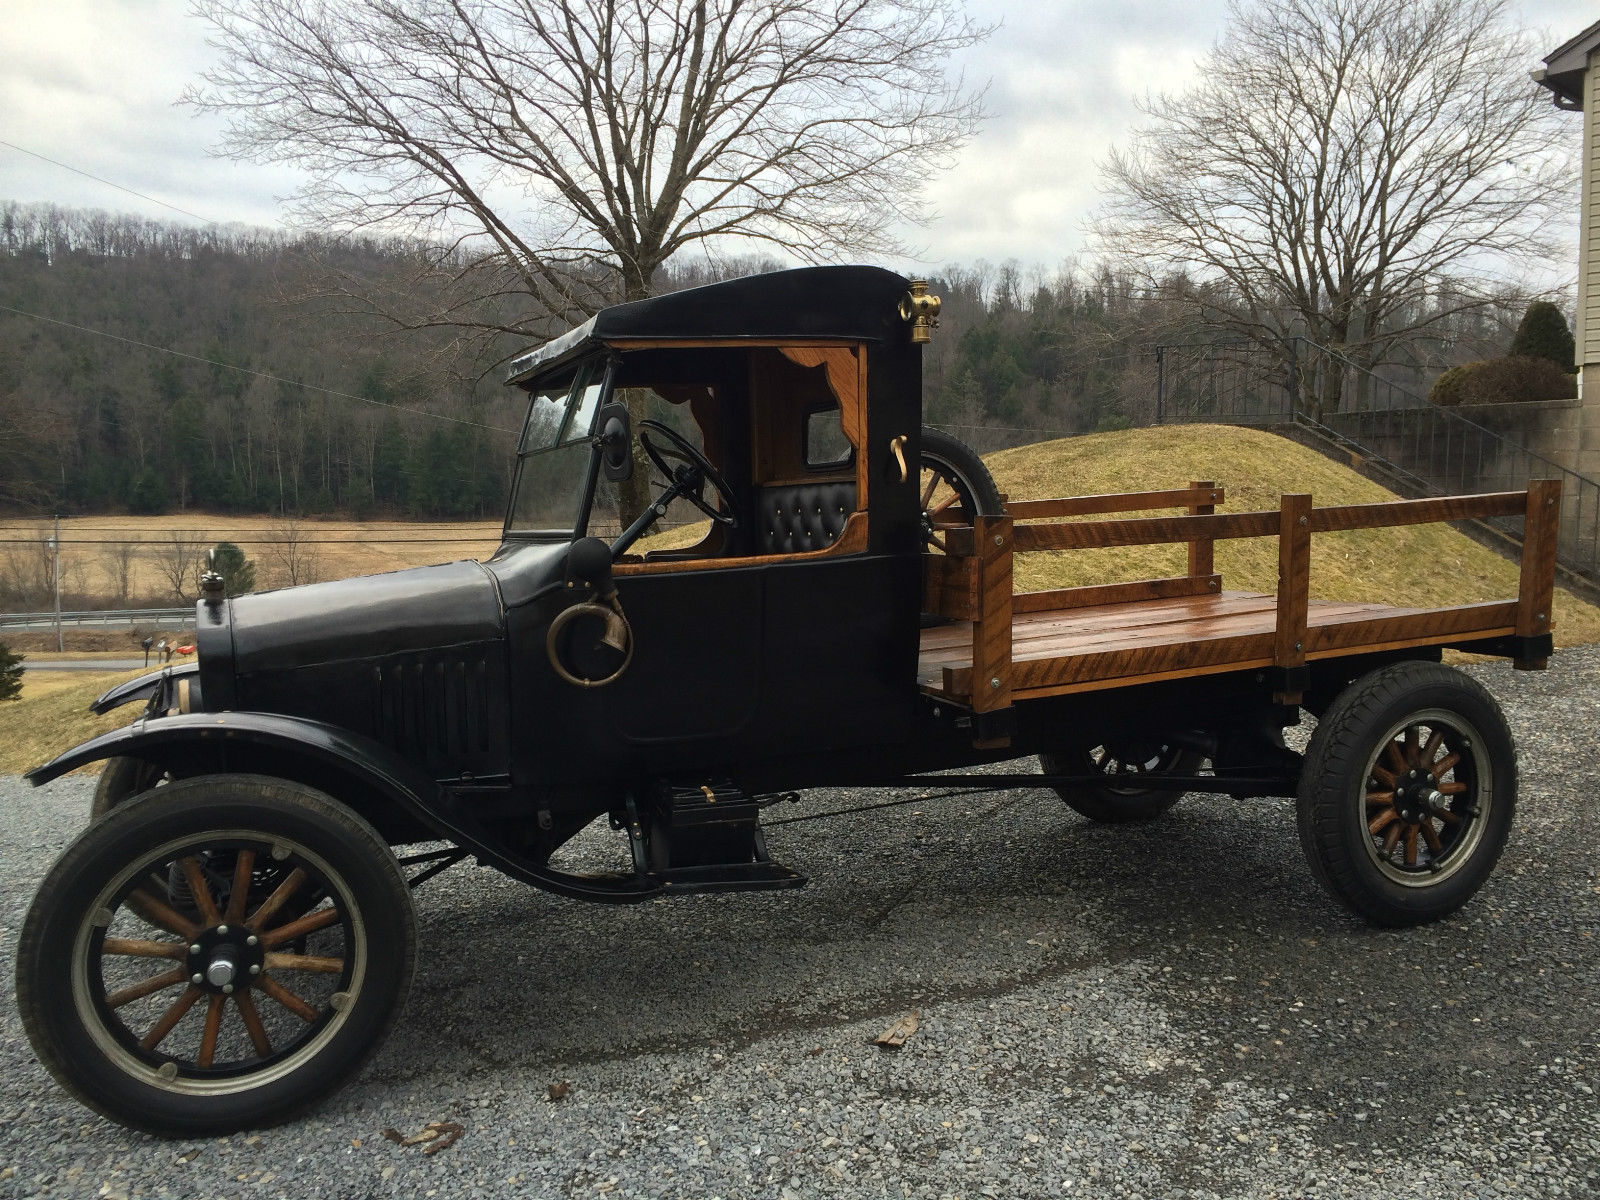 Trucks For Sale: 1924 Ford Model T Truck For Sale